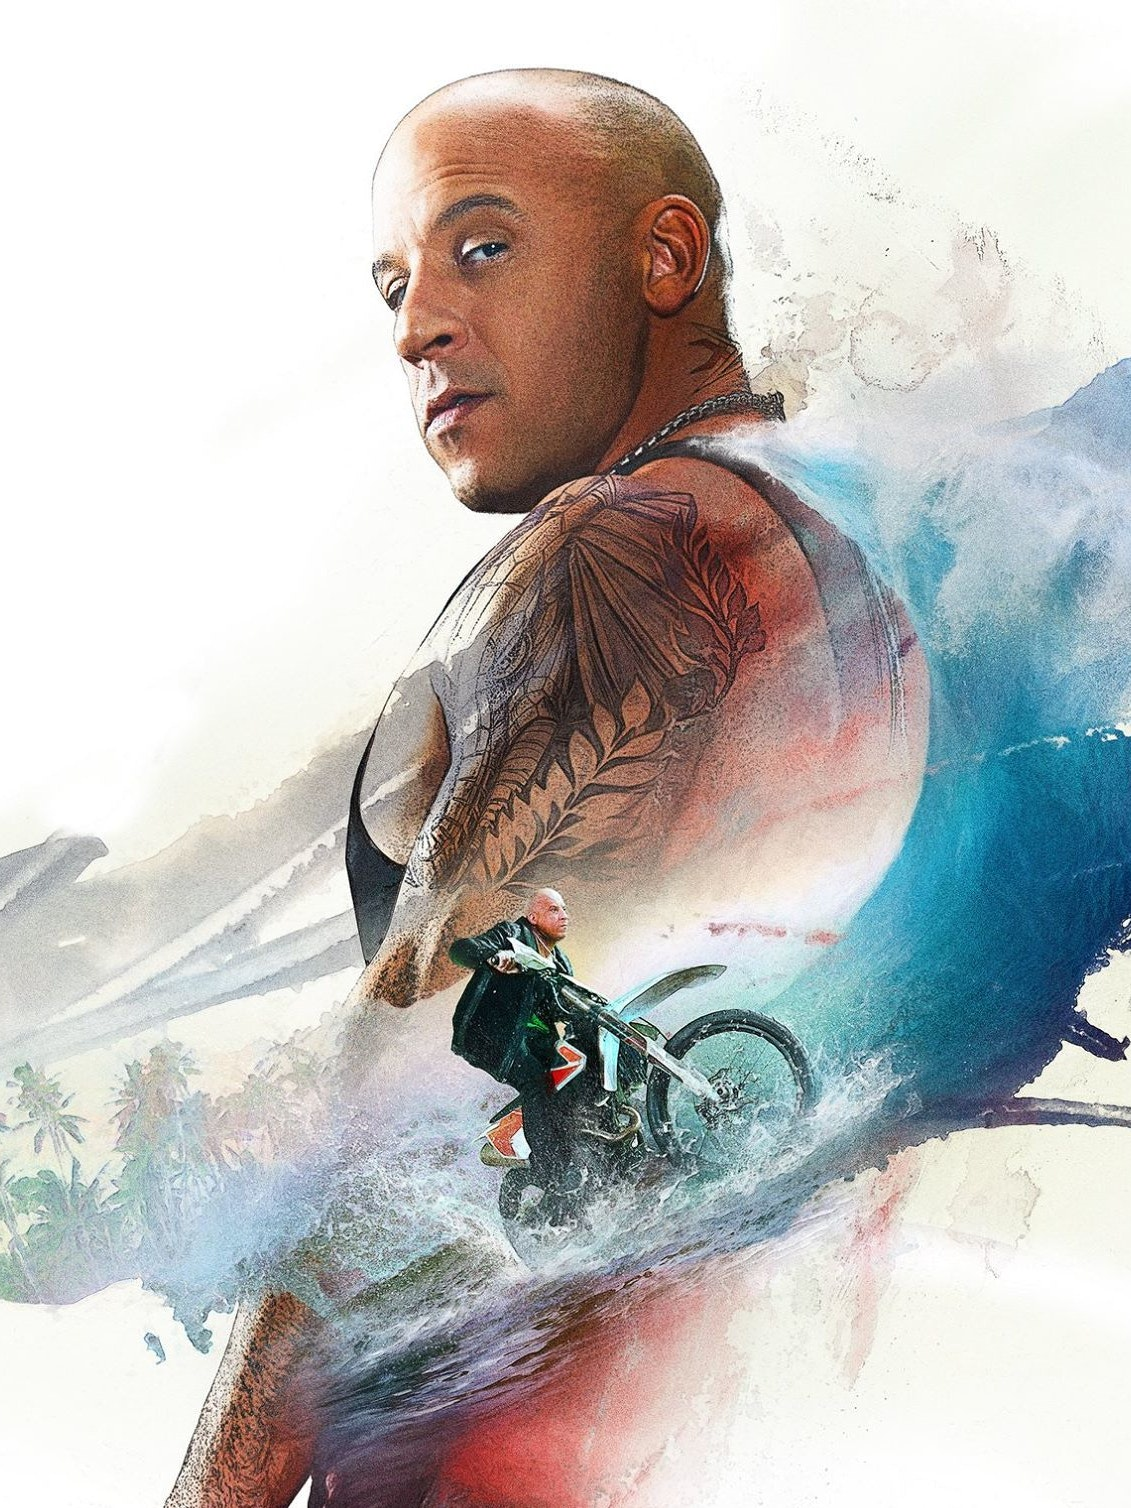 A new trailer was released for the sequel, 'xXx: Return of Xander Cage' starring Vin Diesel